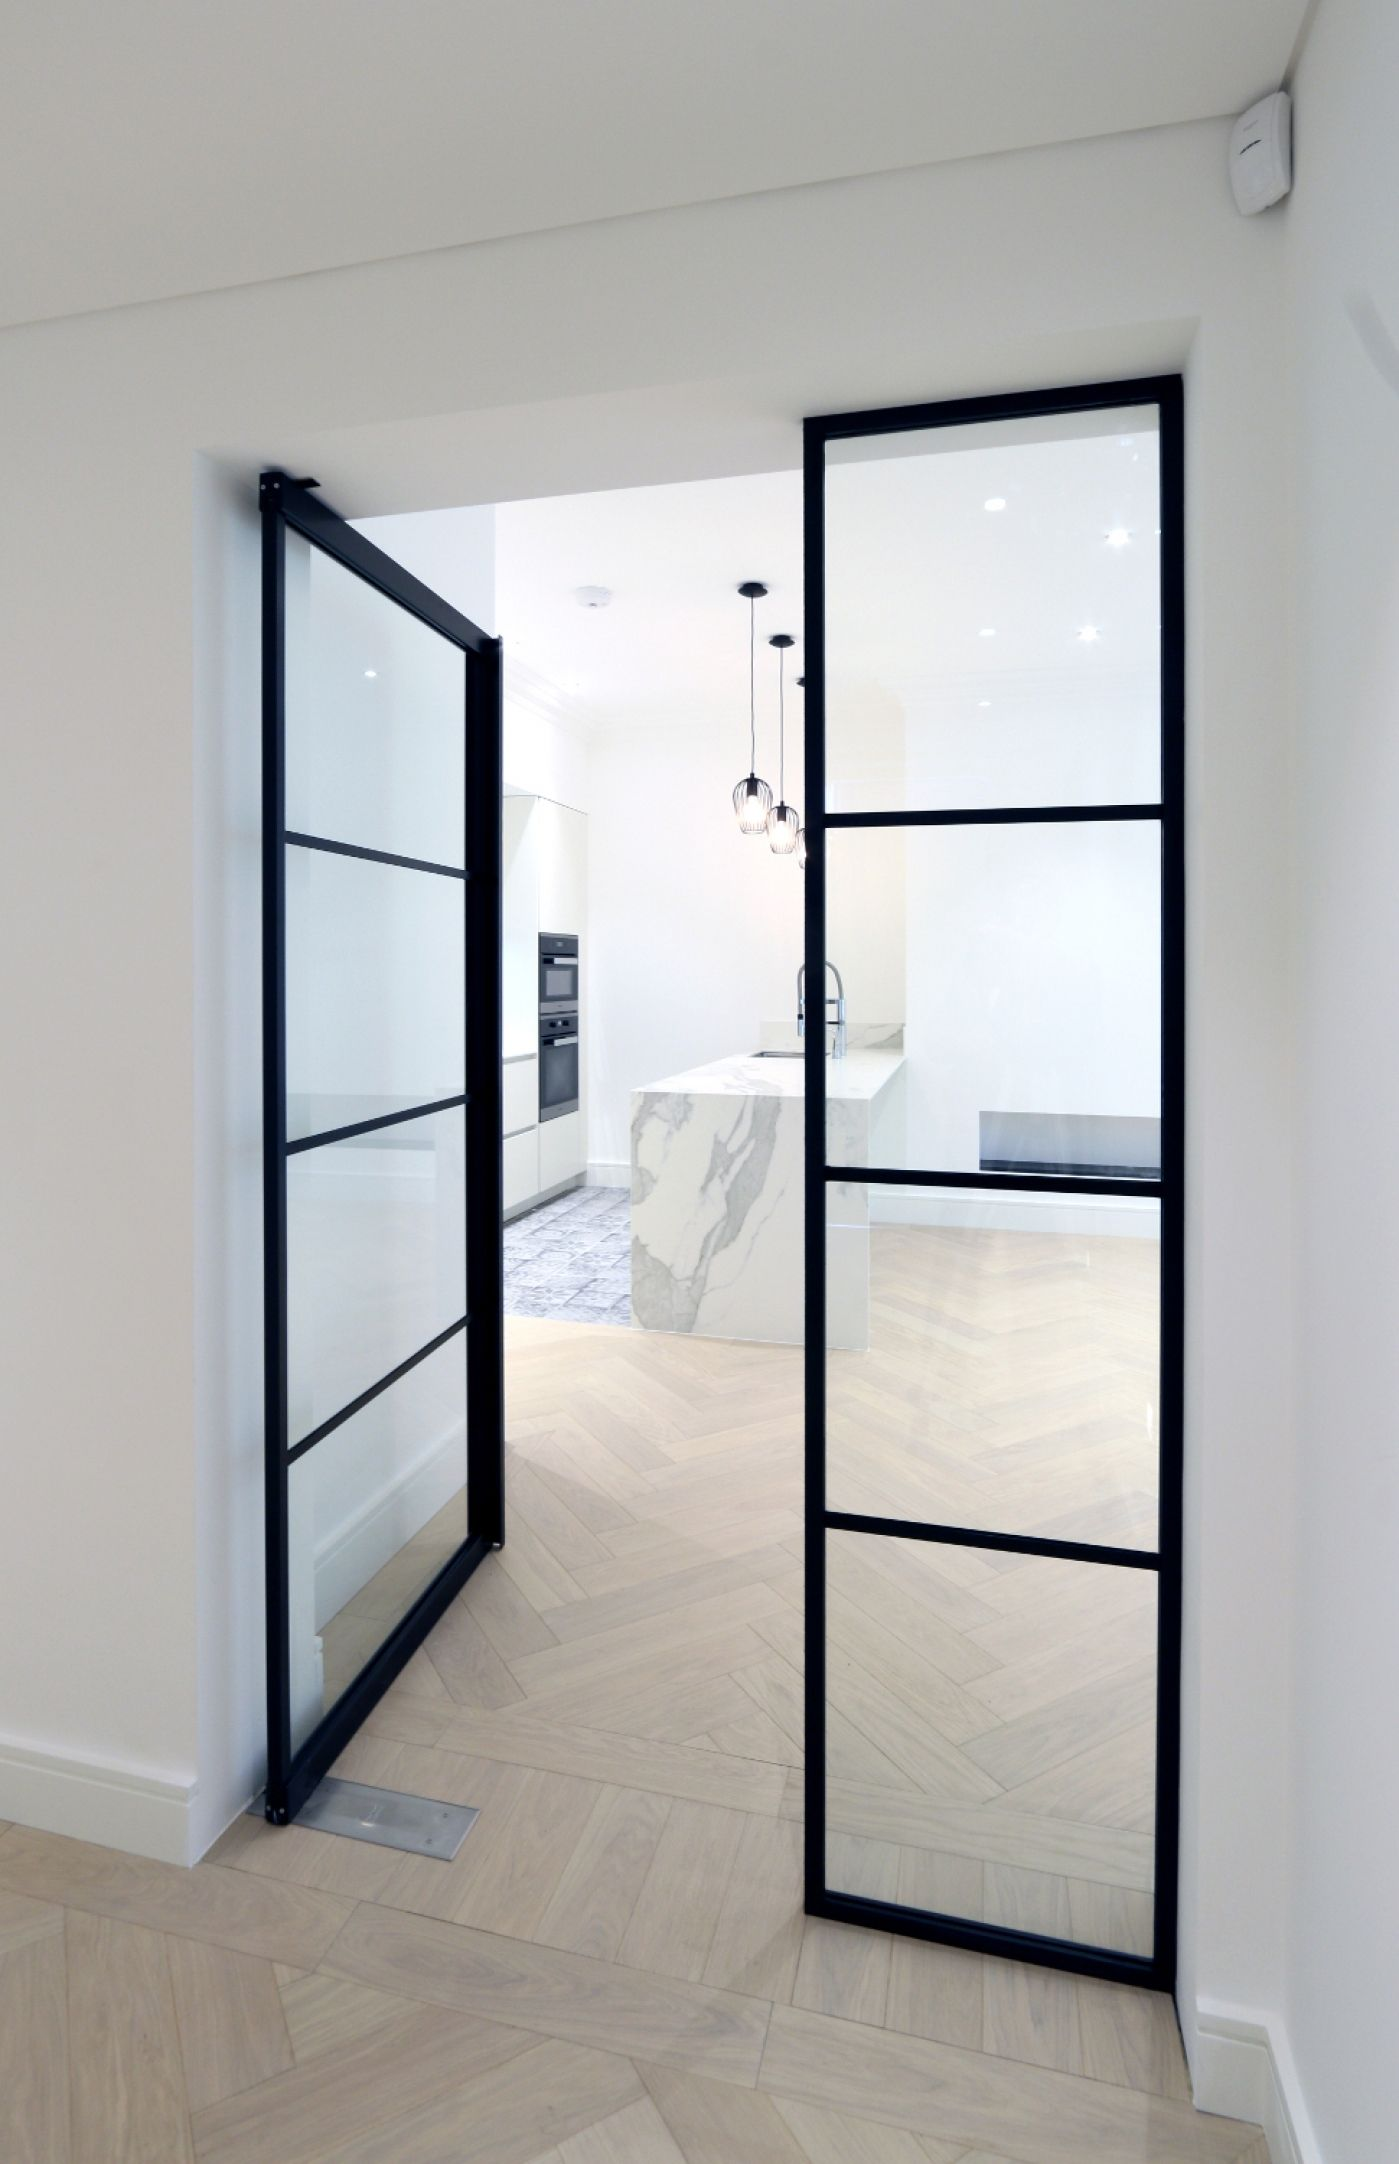 Le Meilleur Iq Glass Recently Installed Their New Mondrian Internal Ce Mois Ci